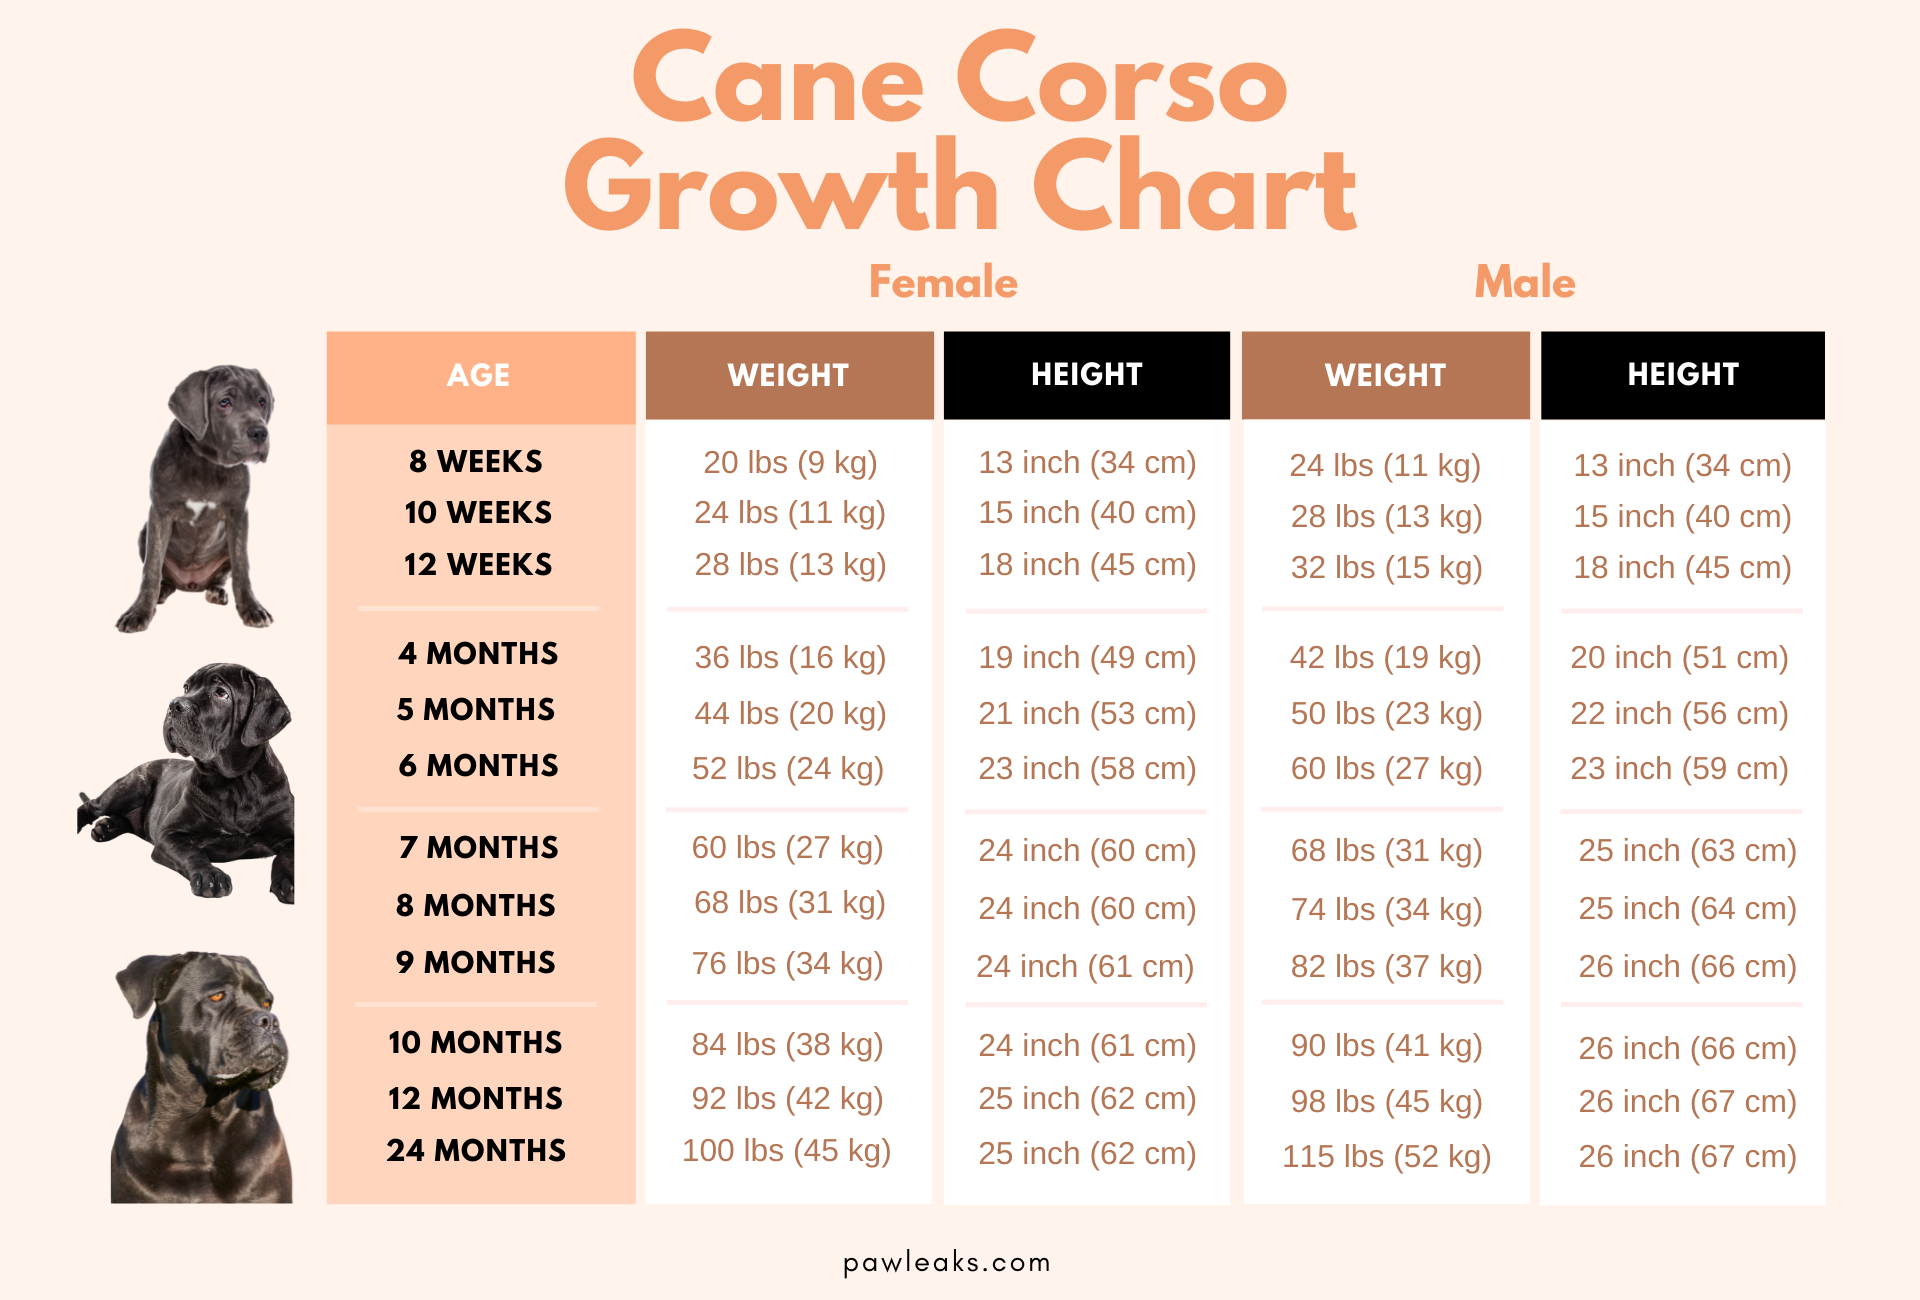 Cane Corso growth chart depicting their weight and height sorted by male and female as well as their age ranging from 8 weeks to 2 years of age.